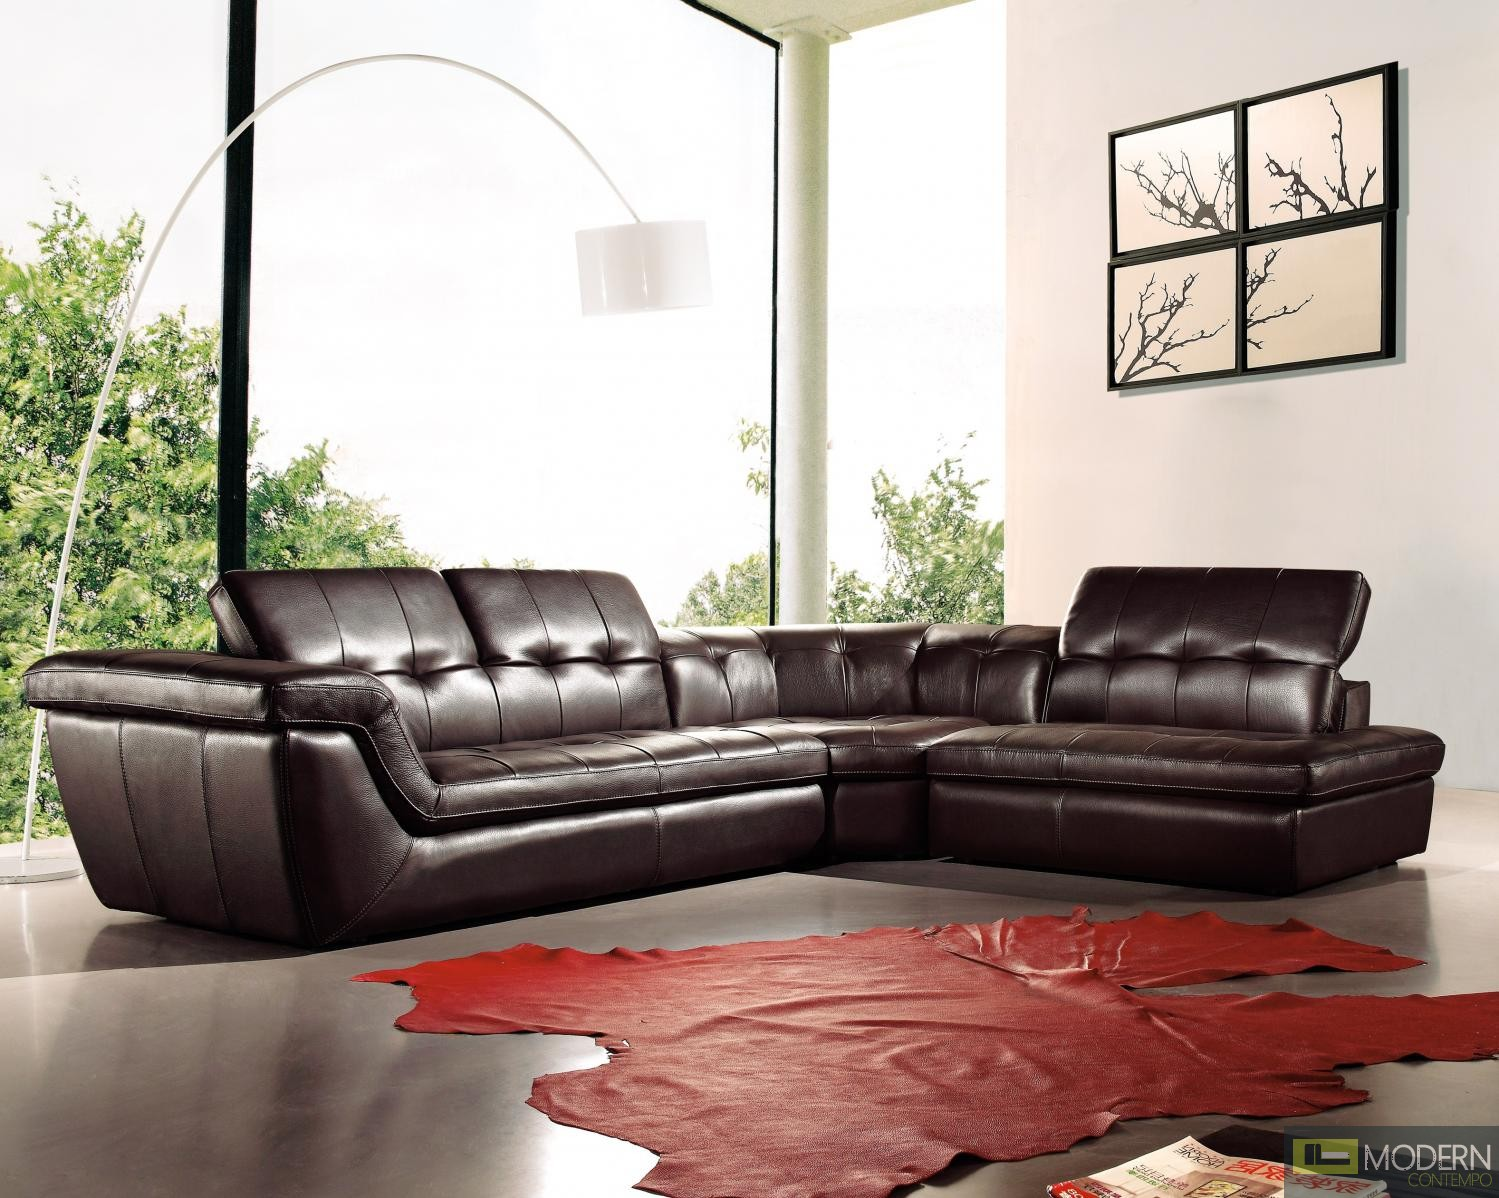 397 Italian Leather Sectional Chocolate Color in Right Hand Facing